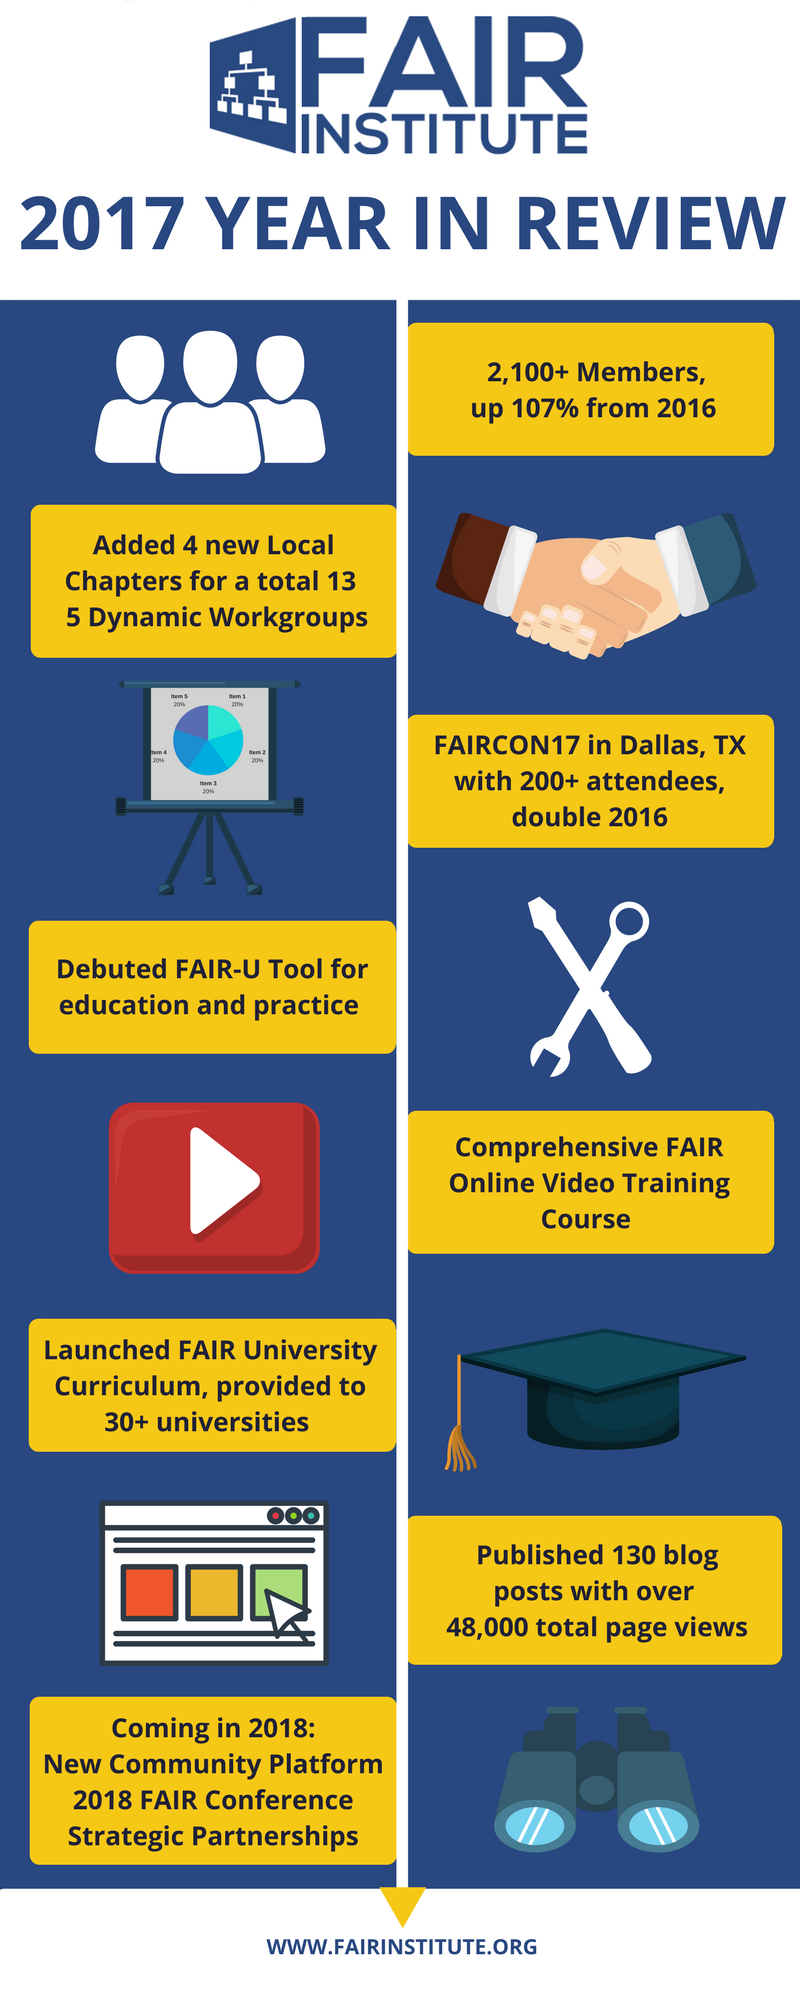 FAIR Institute 2017-Year-in-Review-Infographic copy.png